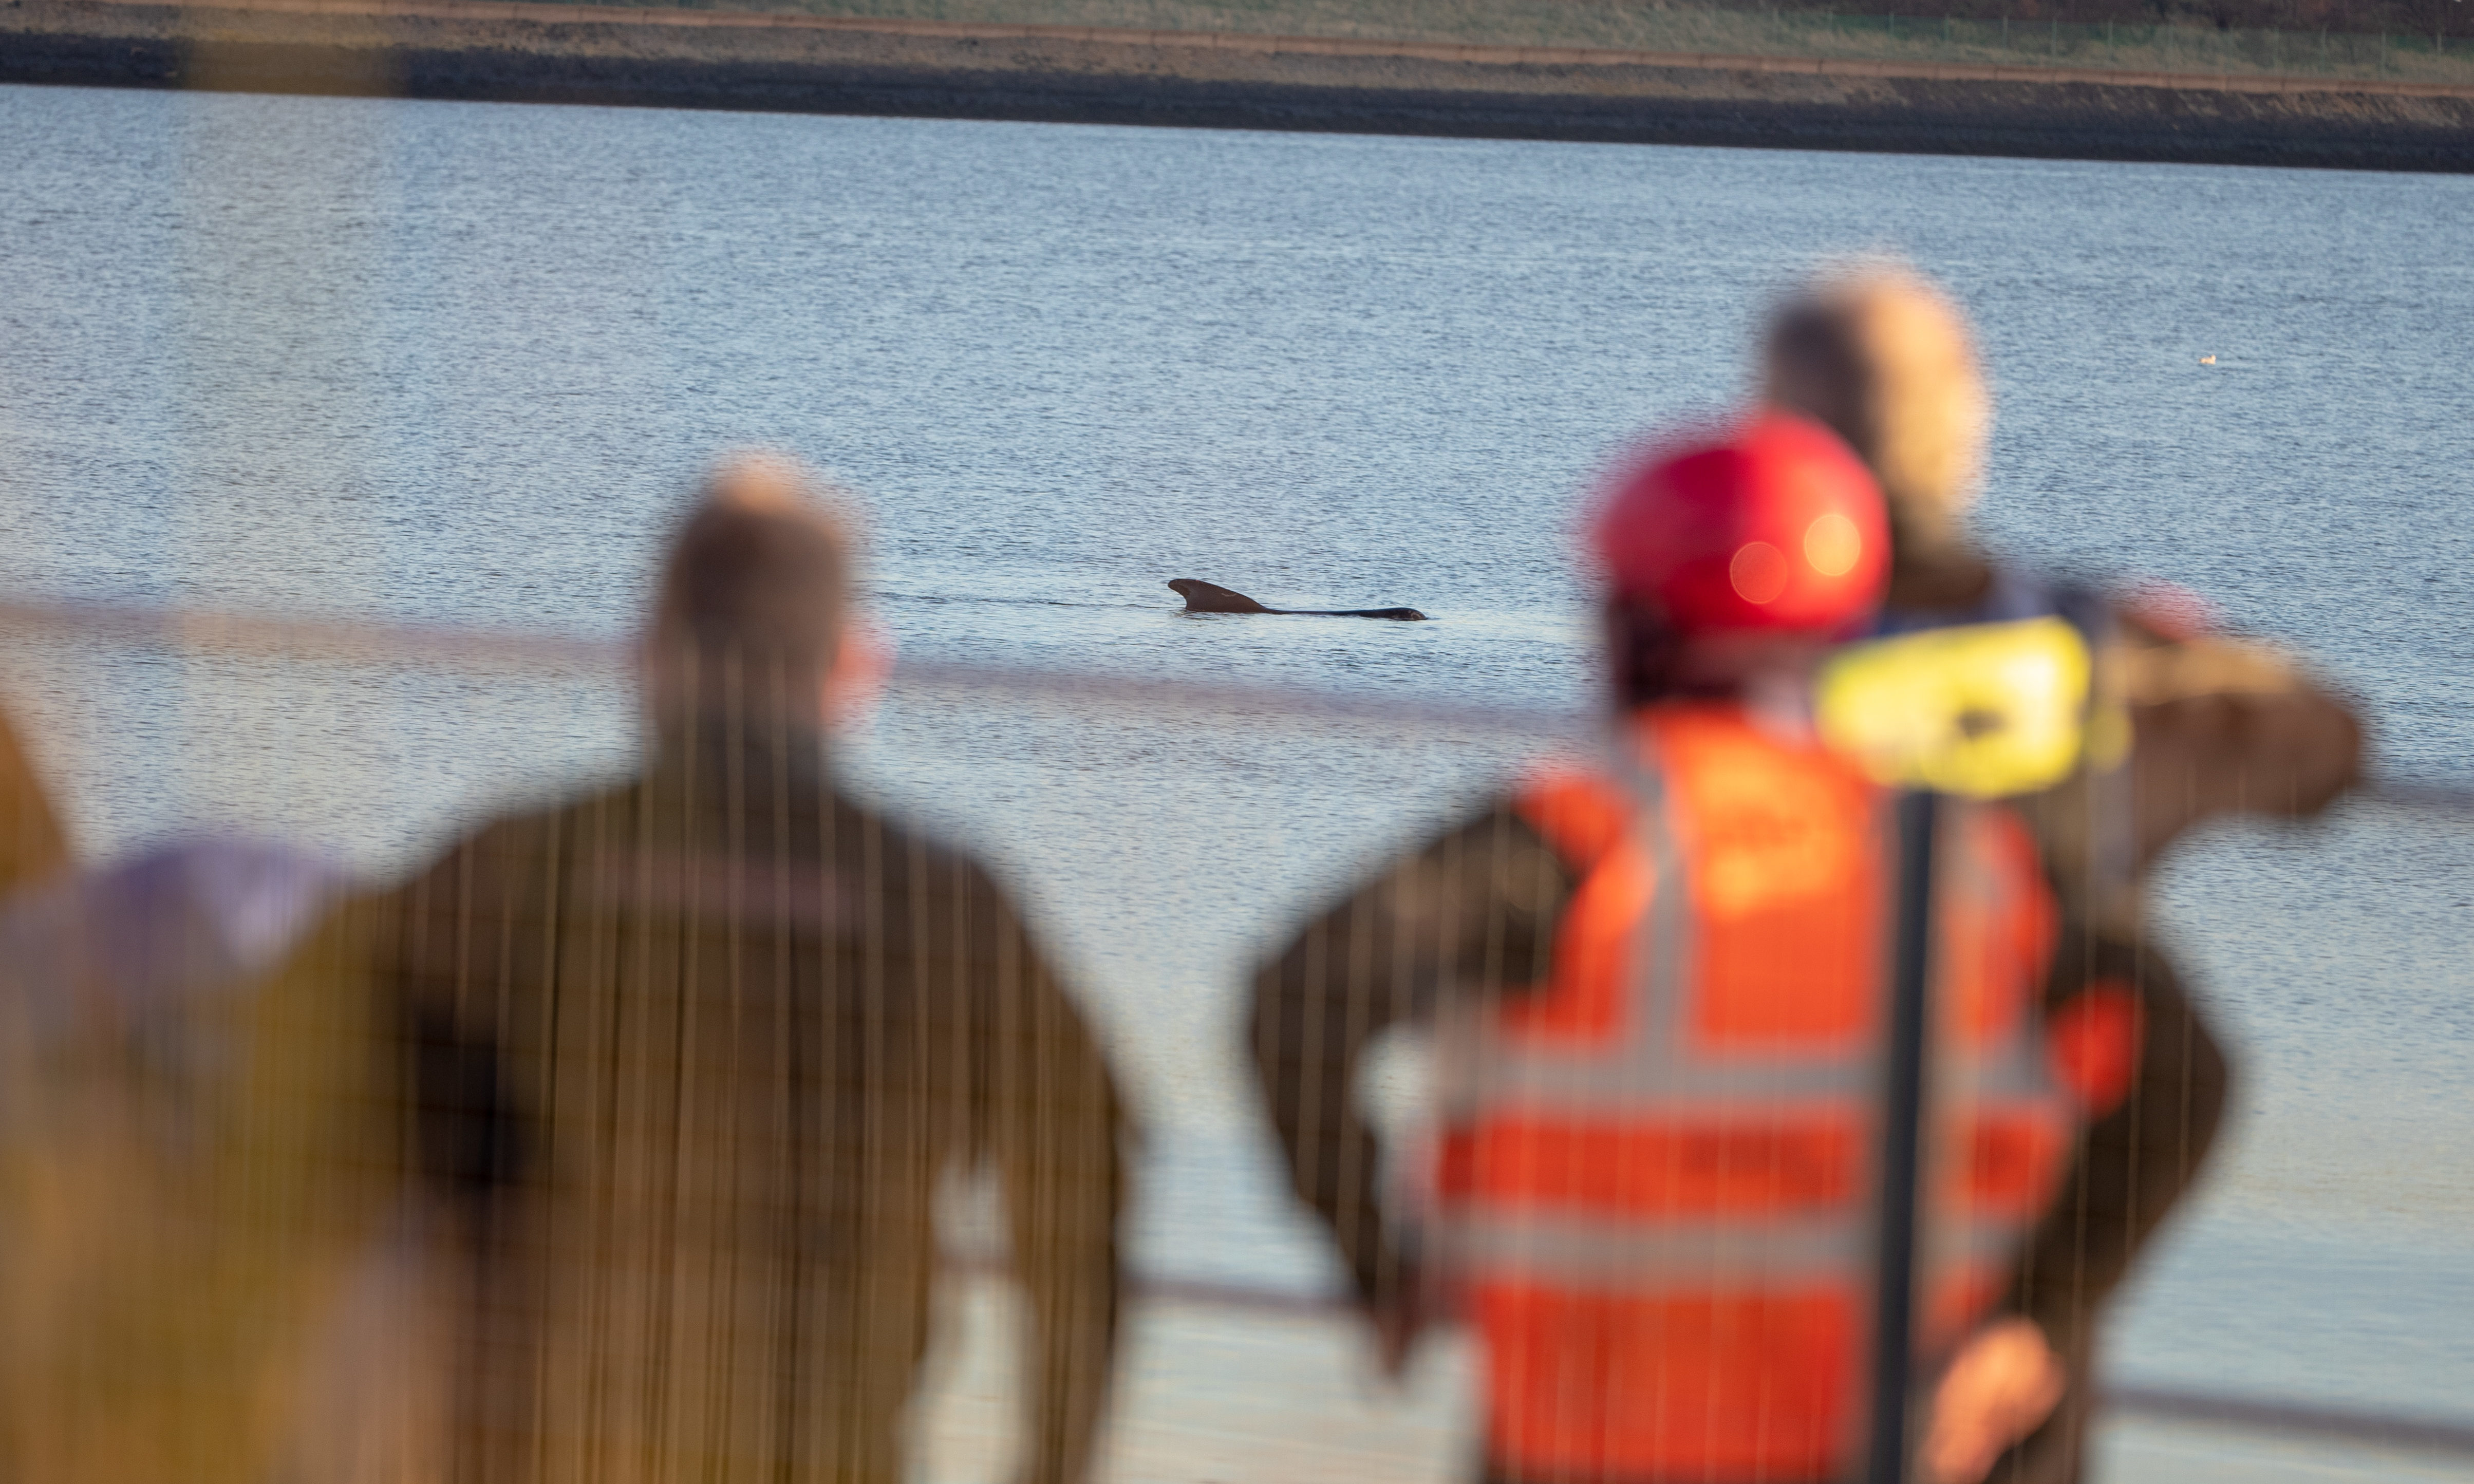 Rescuers watch the whales in the Firth near Culross.